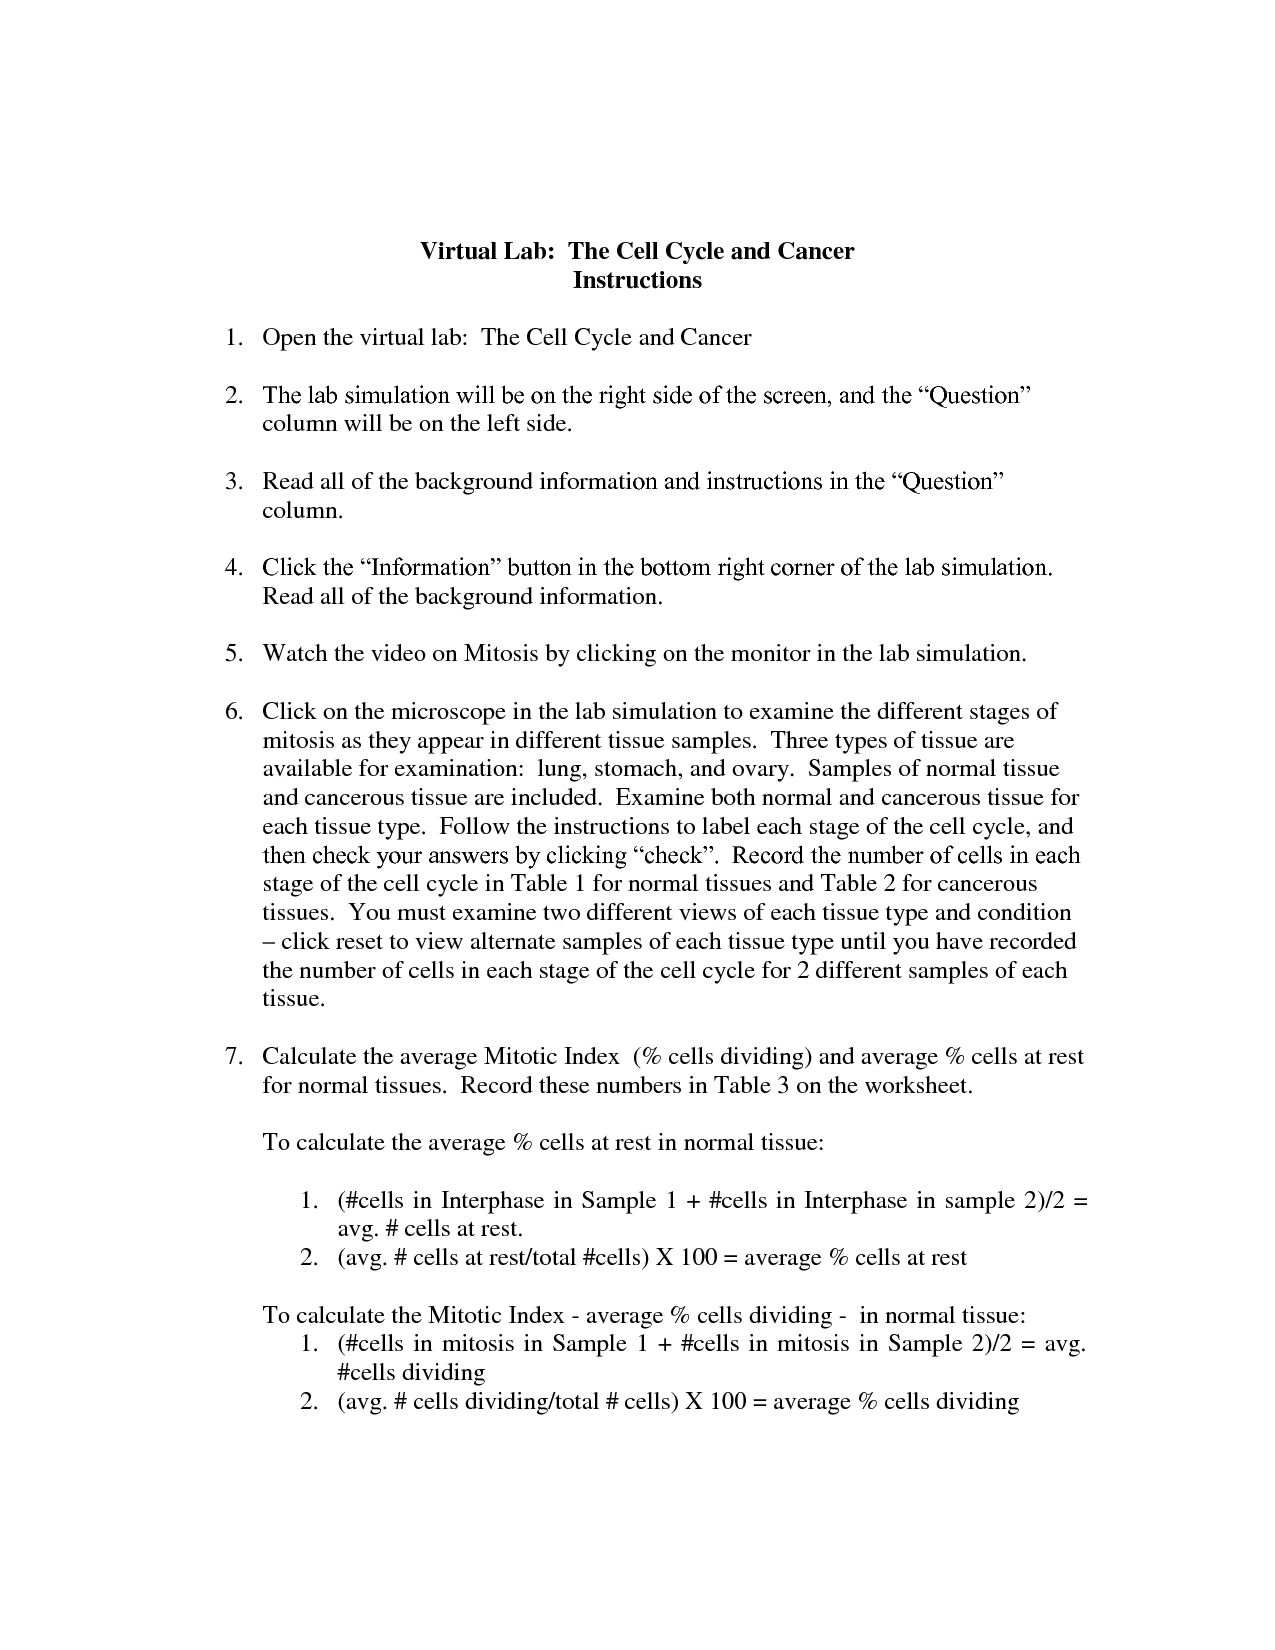 Virtual Lab The Cell Cycle And Cancer Worksheet Answers